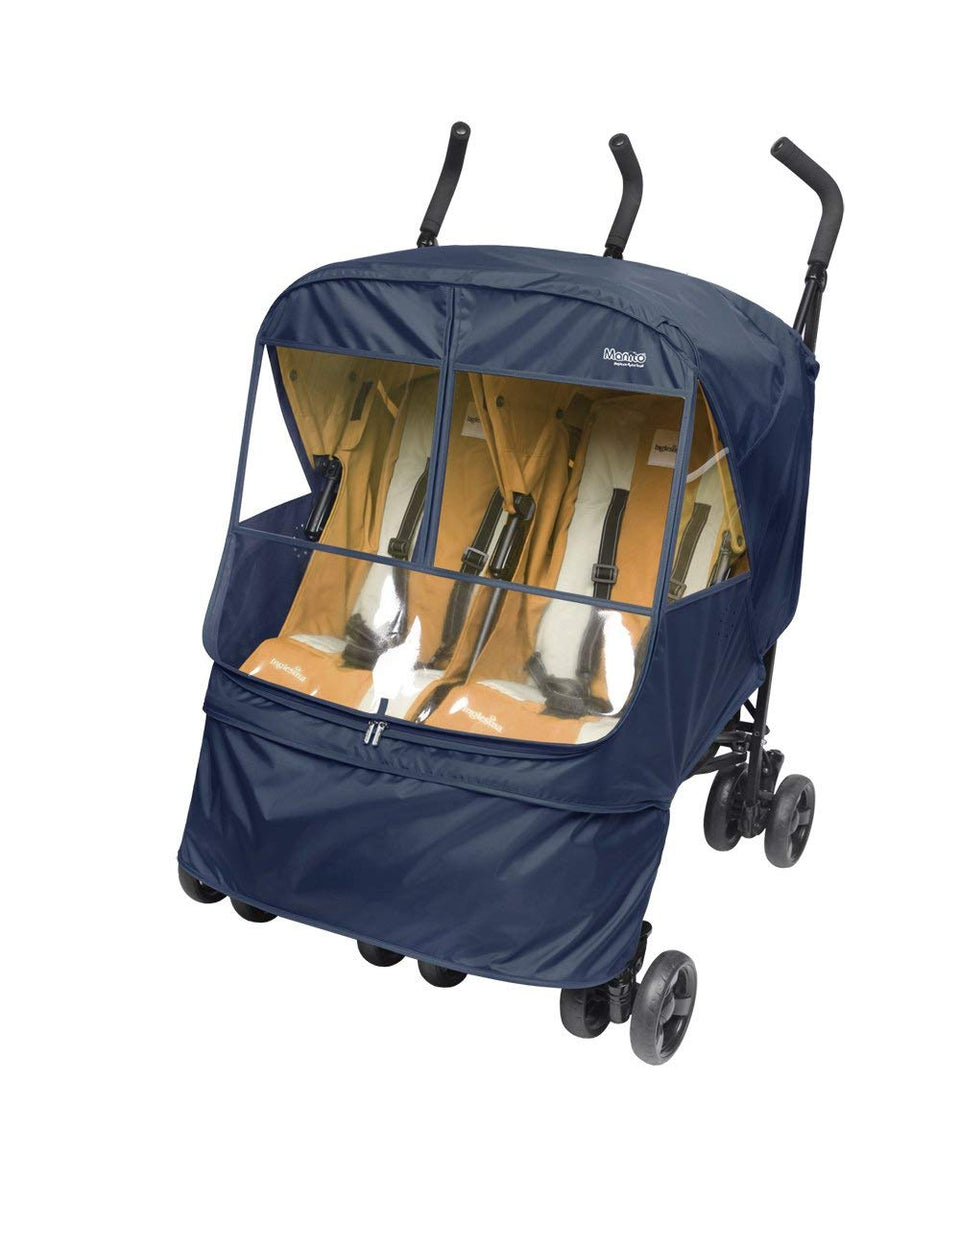 Elegance Alpha Twin Stroller Weather Shield (Navy)